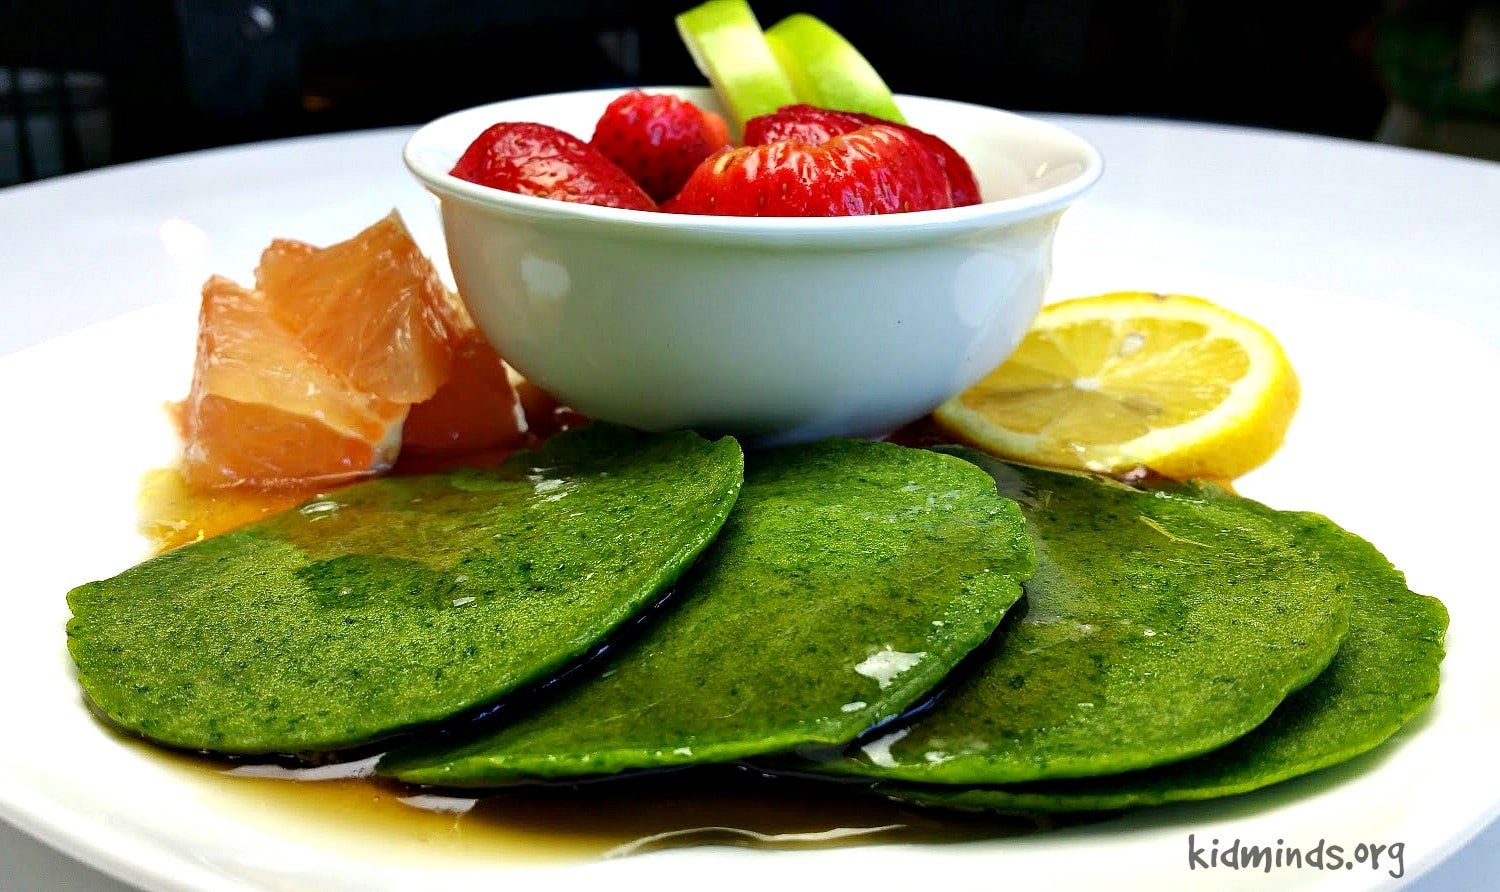 Green Pancakes without artificial colorings.  The rich green color comes from fresh and nutritious spinach.  Enjoy them on St. Patrick's Day or any other day of the year!